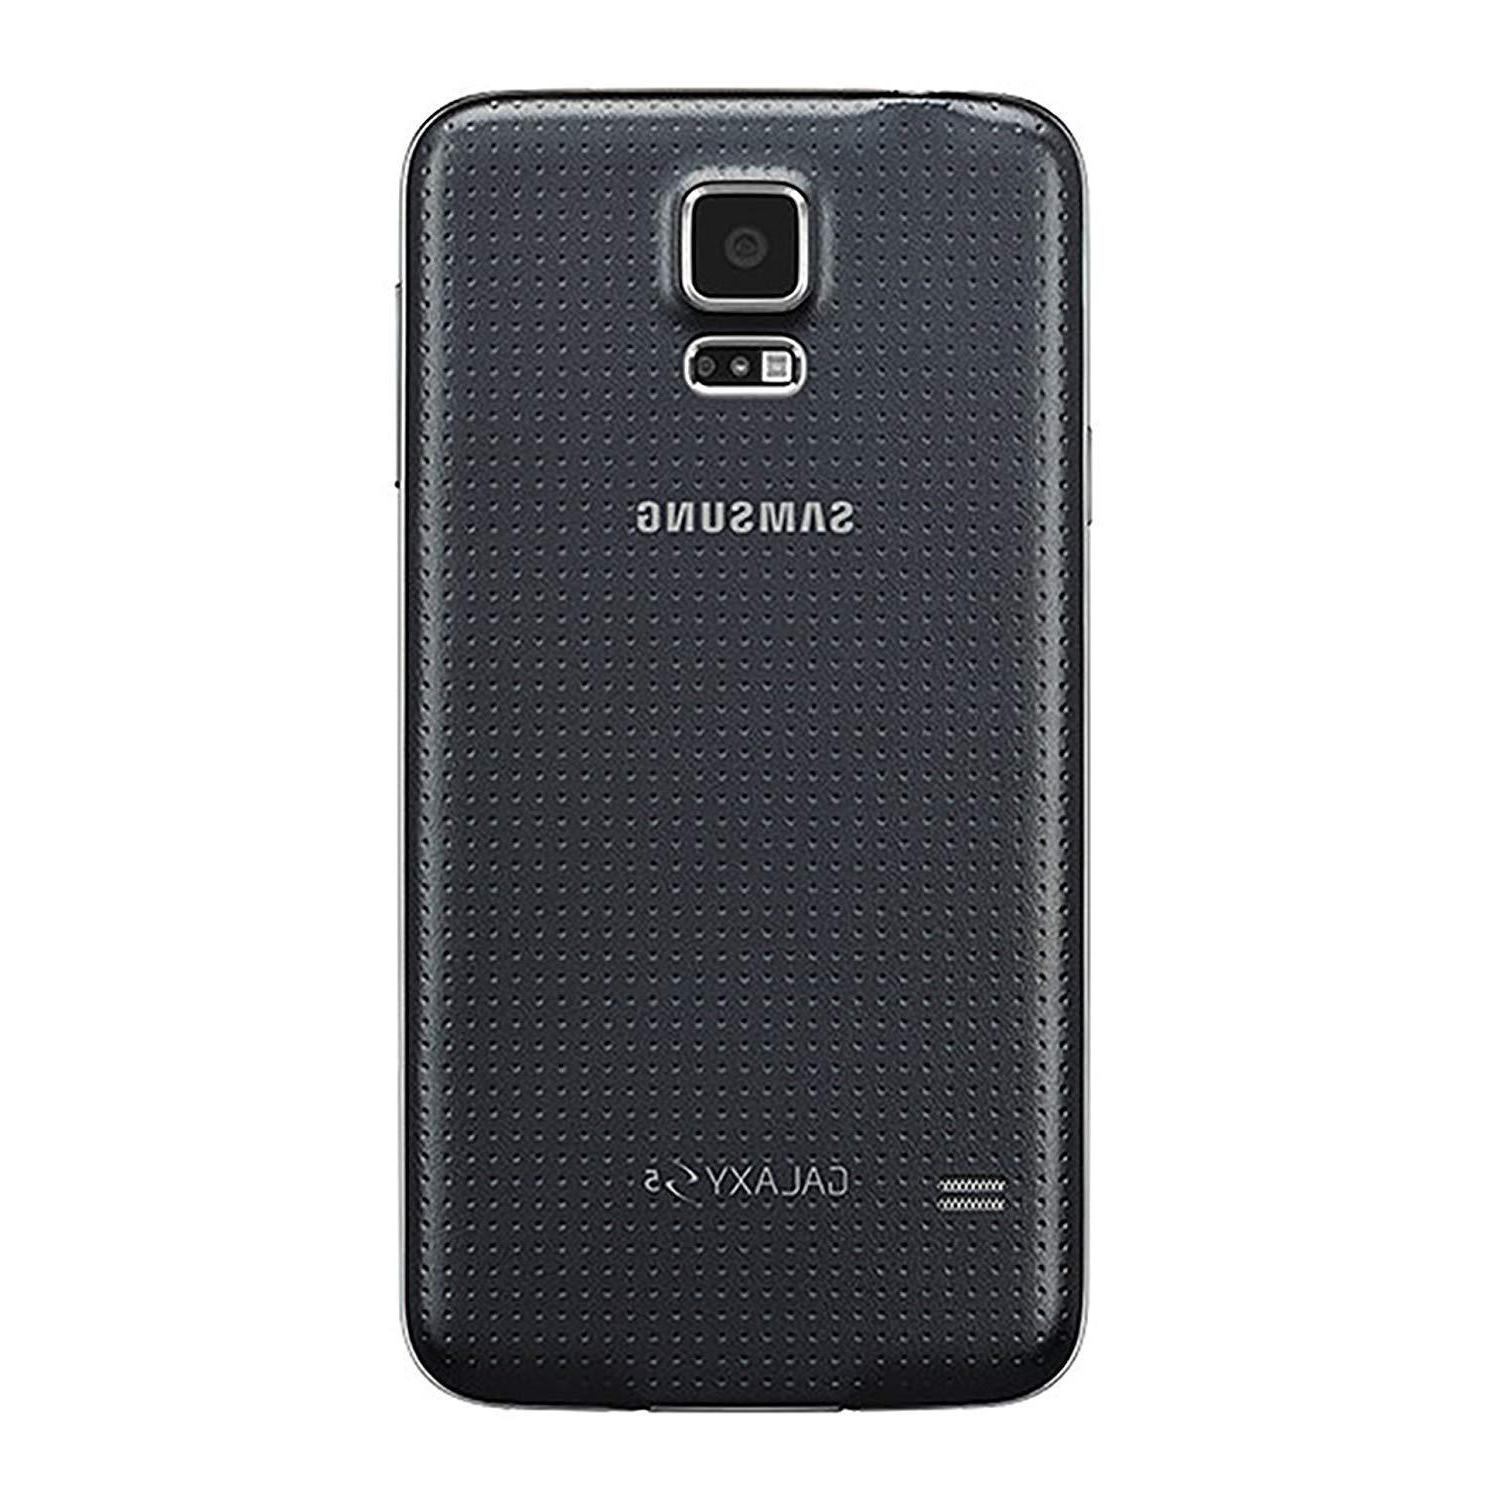 New Samsung G900A 16GB Unlocked